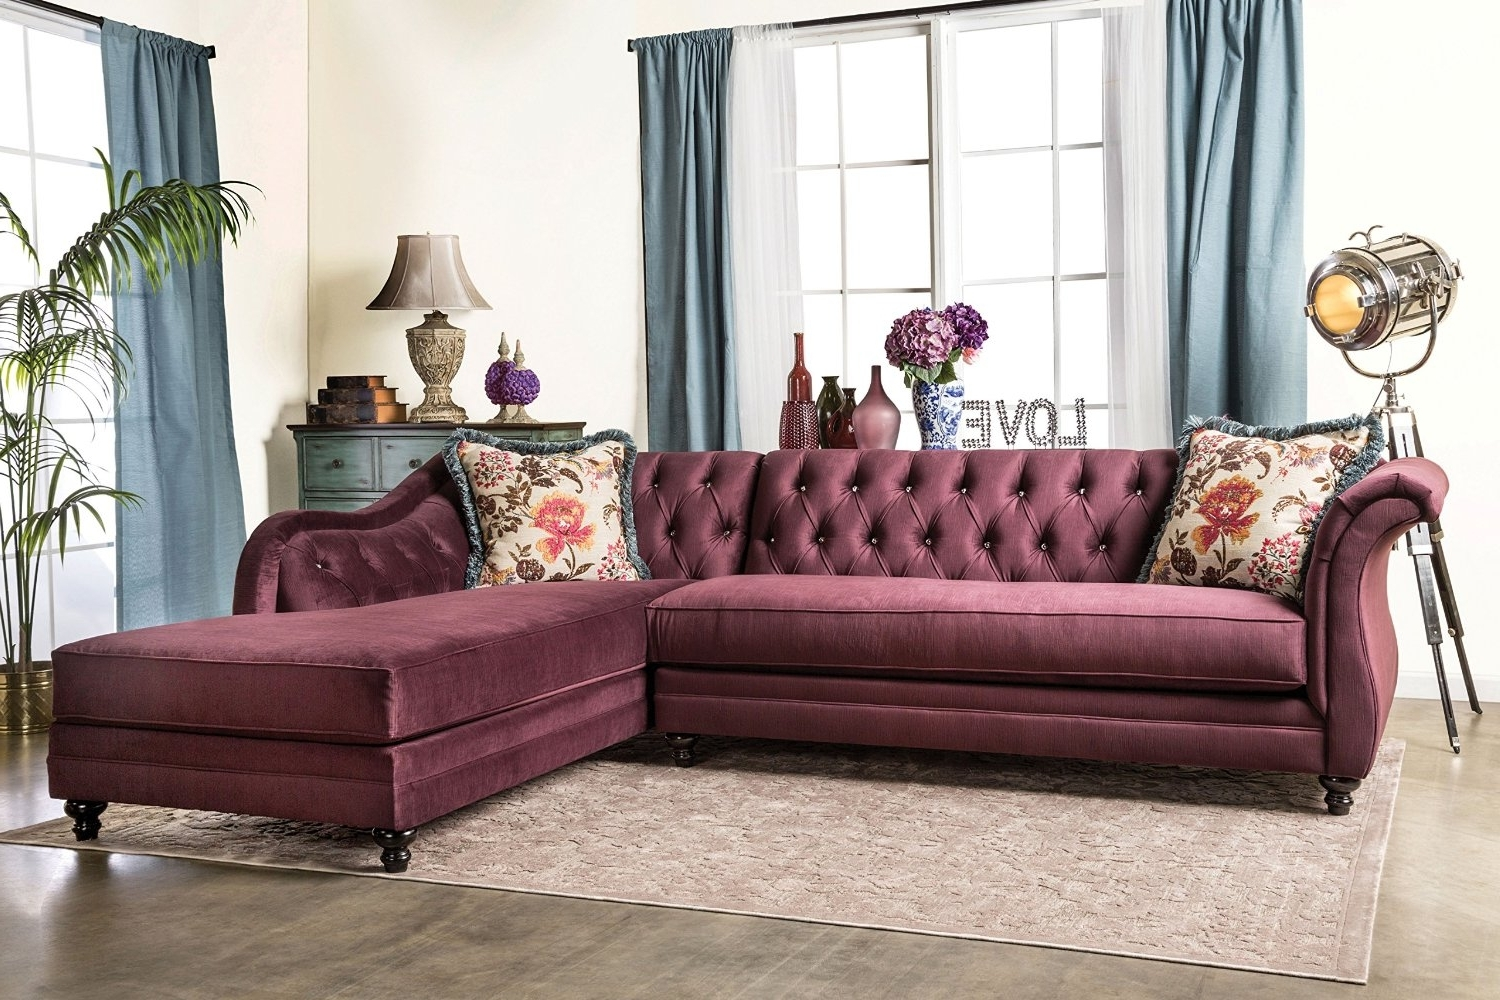 Target Sectional Sofas Pertaining To Most Popular Sofa : Target Tufted Loveseat Tufted Leather Furniture White (Gallery 8 of 20)